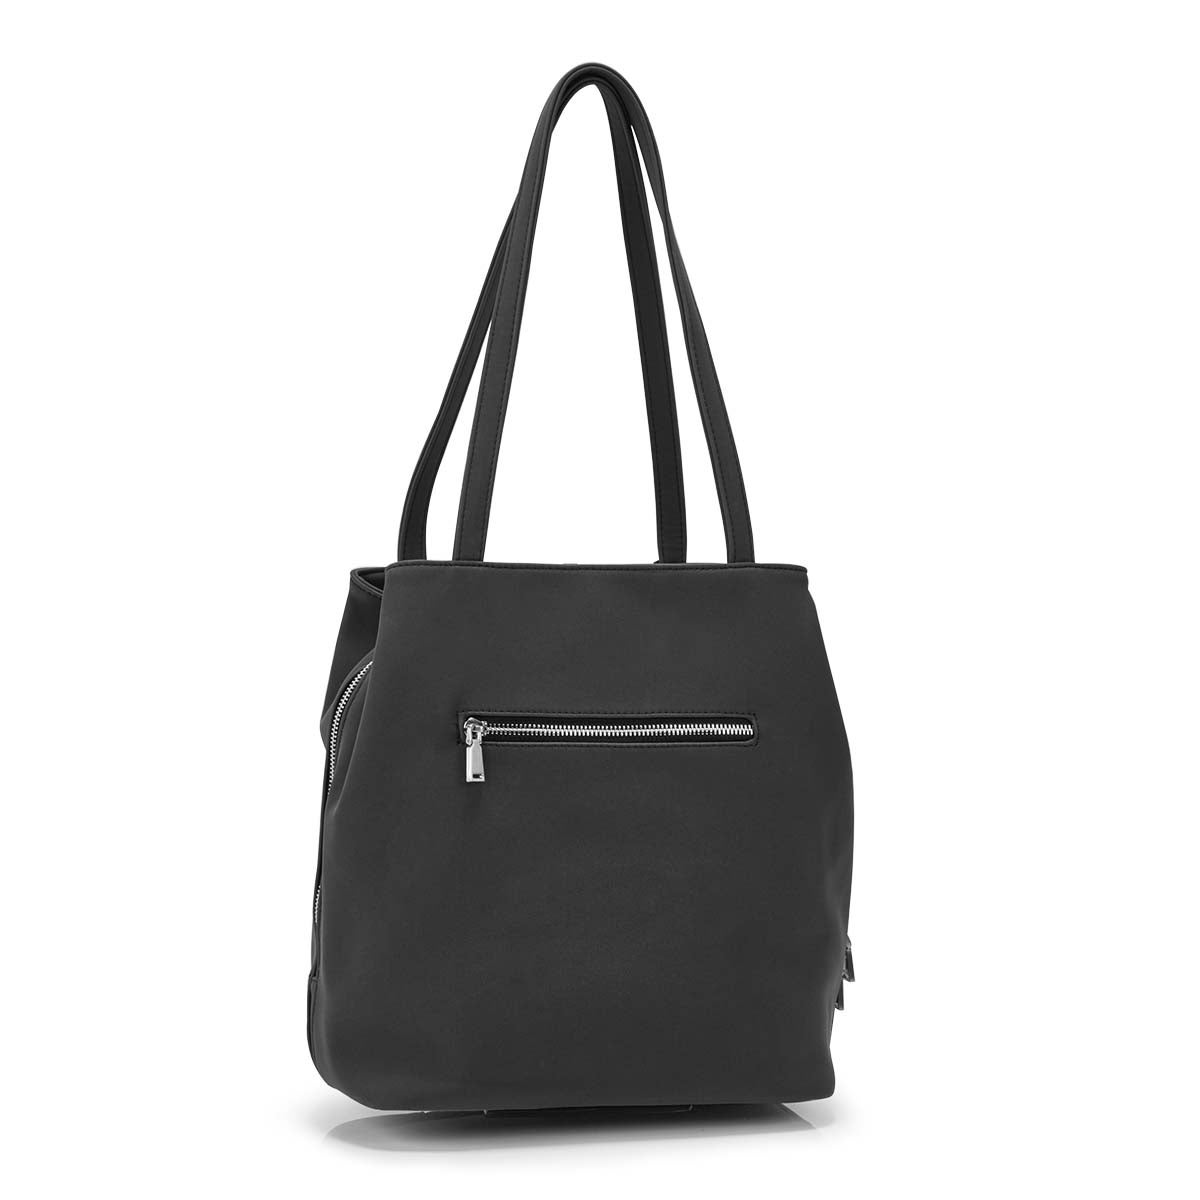 Women's SOHO triple compartment black satchel